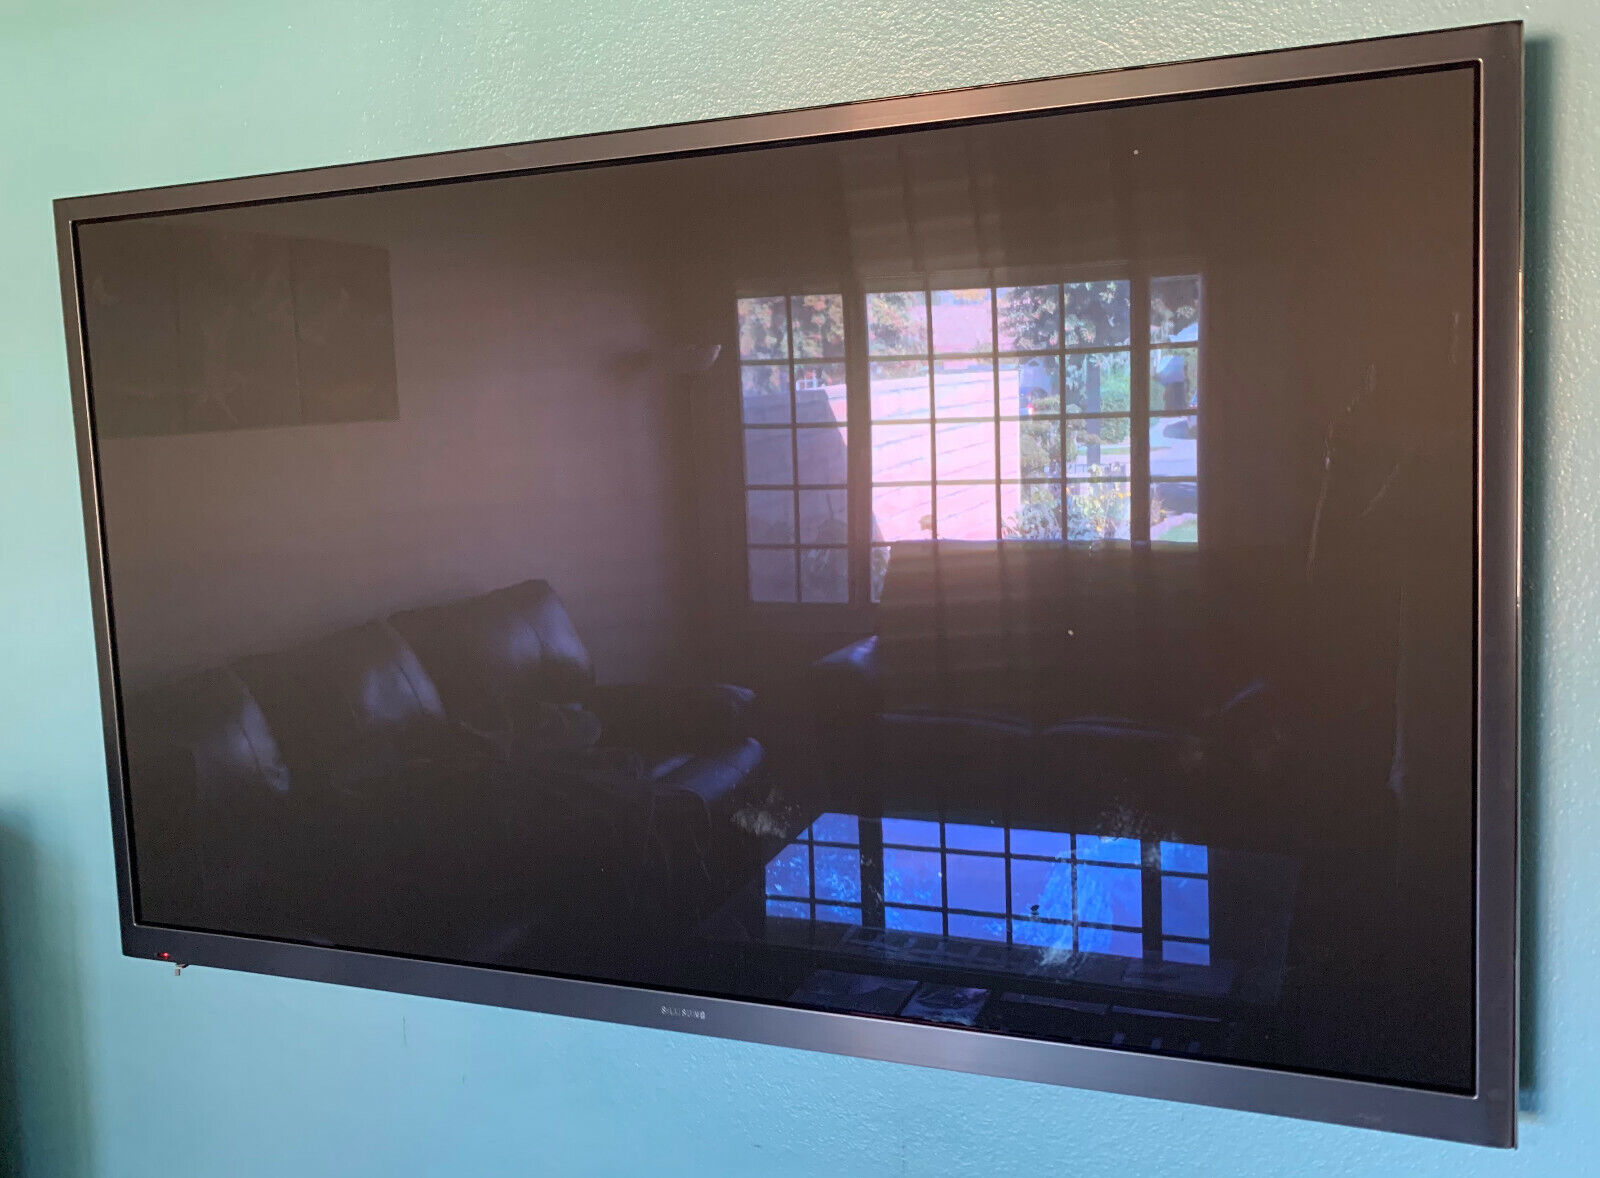 Samsung PN60F8500 60 Plasma 1080p 3D HDTV. Available Now for 950.00